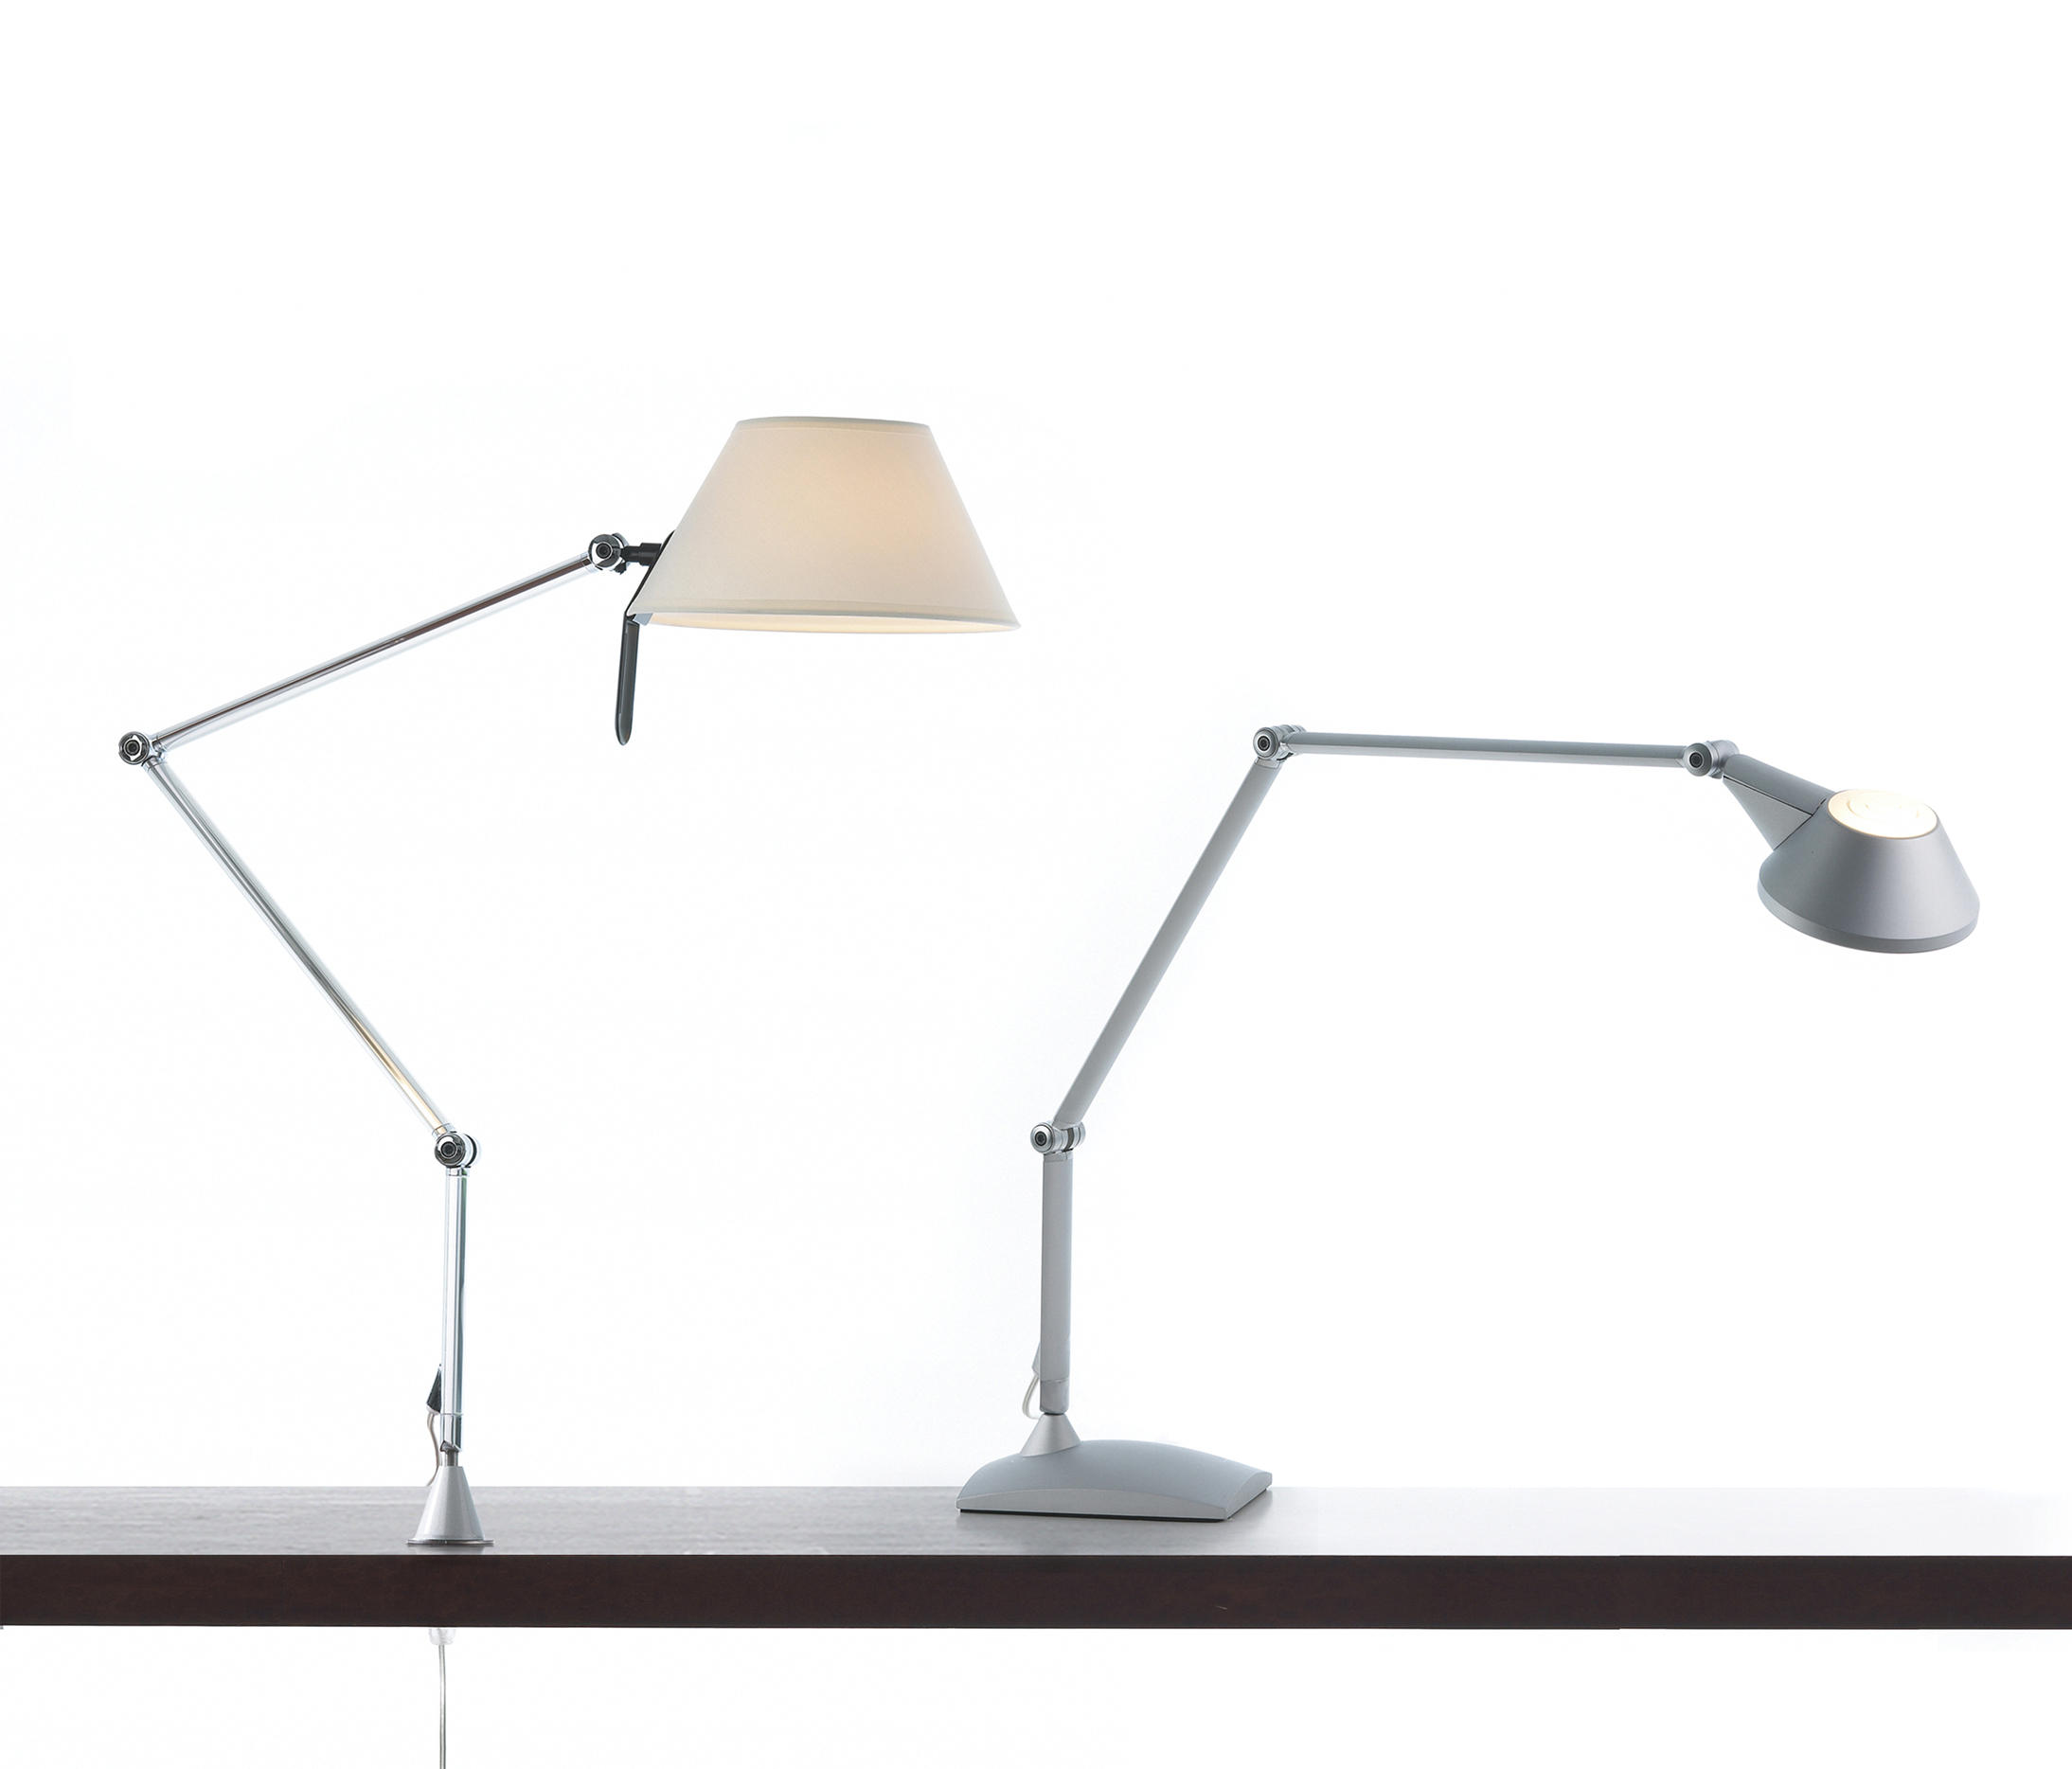 Petite 12 Balanced-arm lamp Structure without base E27 1x57w Aluminium Mate